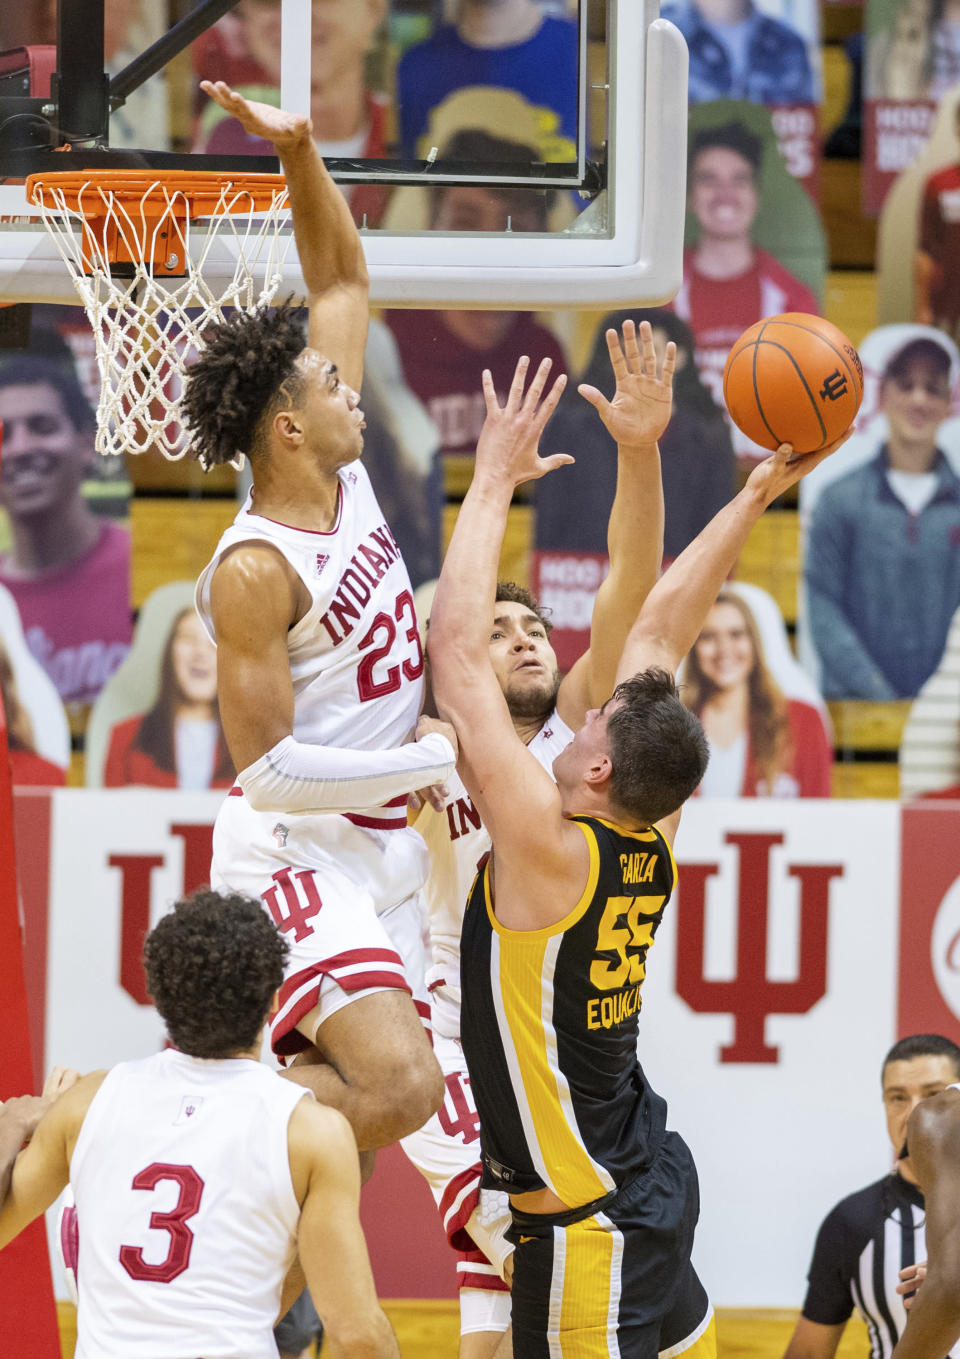 Indiana forward Trayce Jackson-Davis (23) goes up to block a shot by Iowa center Luka Garza (55) during the second half of an NCAA college basketball game, Sunday, Feb. 7, 2021, in Bloomington, Ind. (AP Photo/Doug McSchooler)